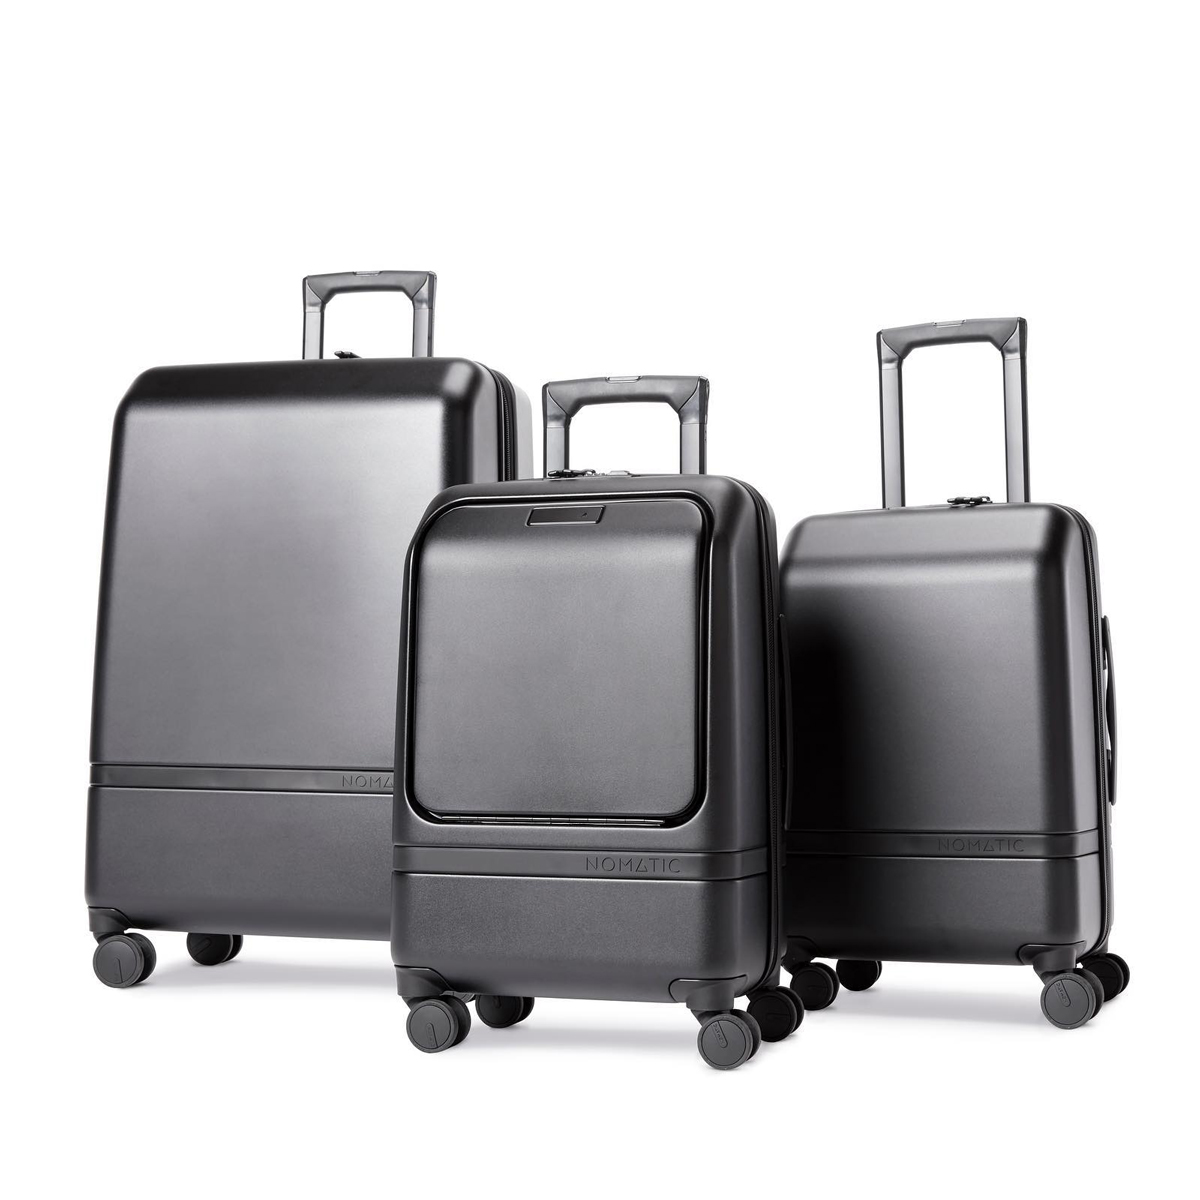 Nomatic Luggage Set